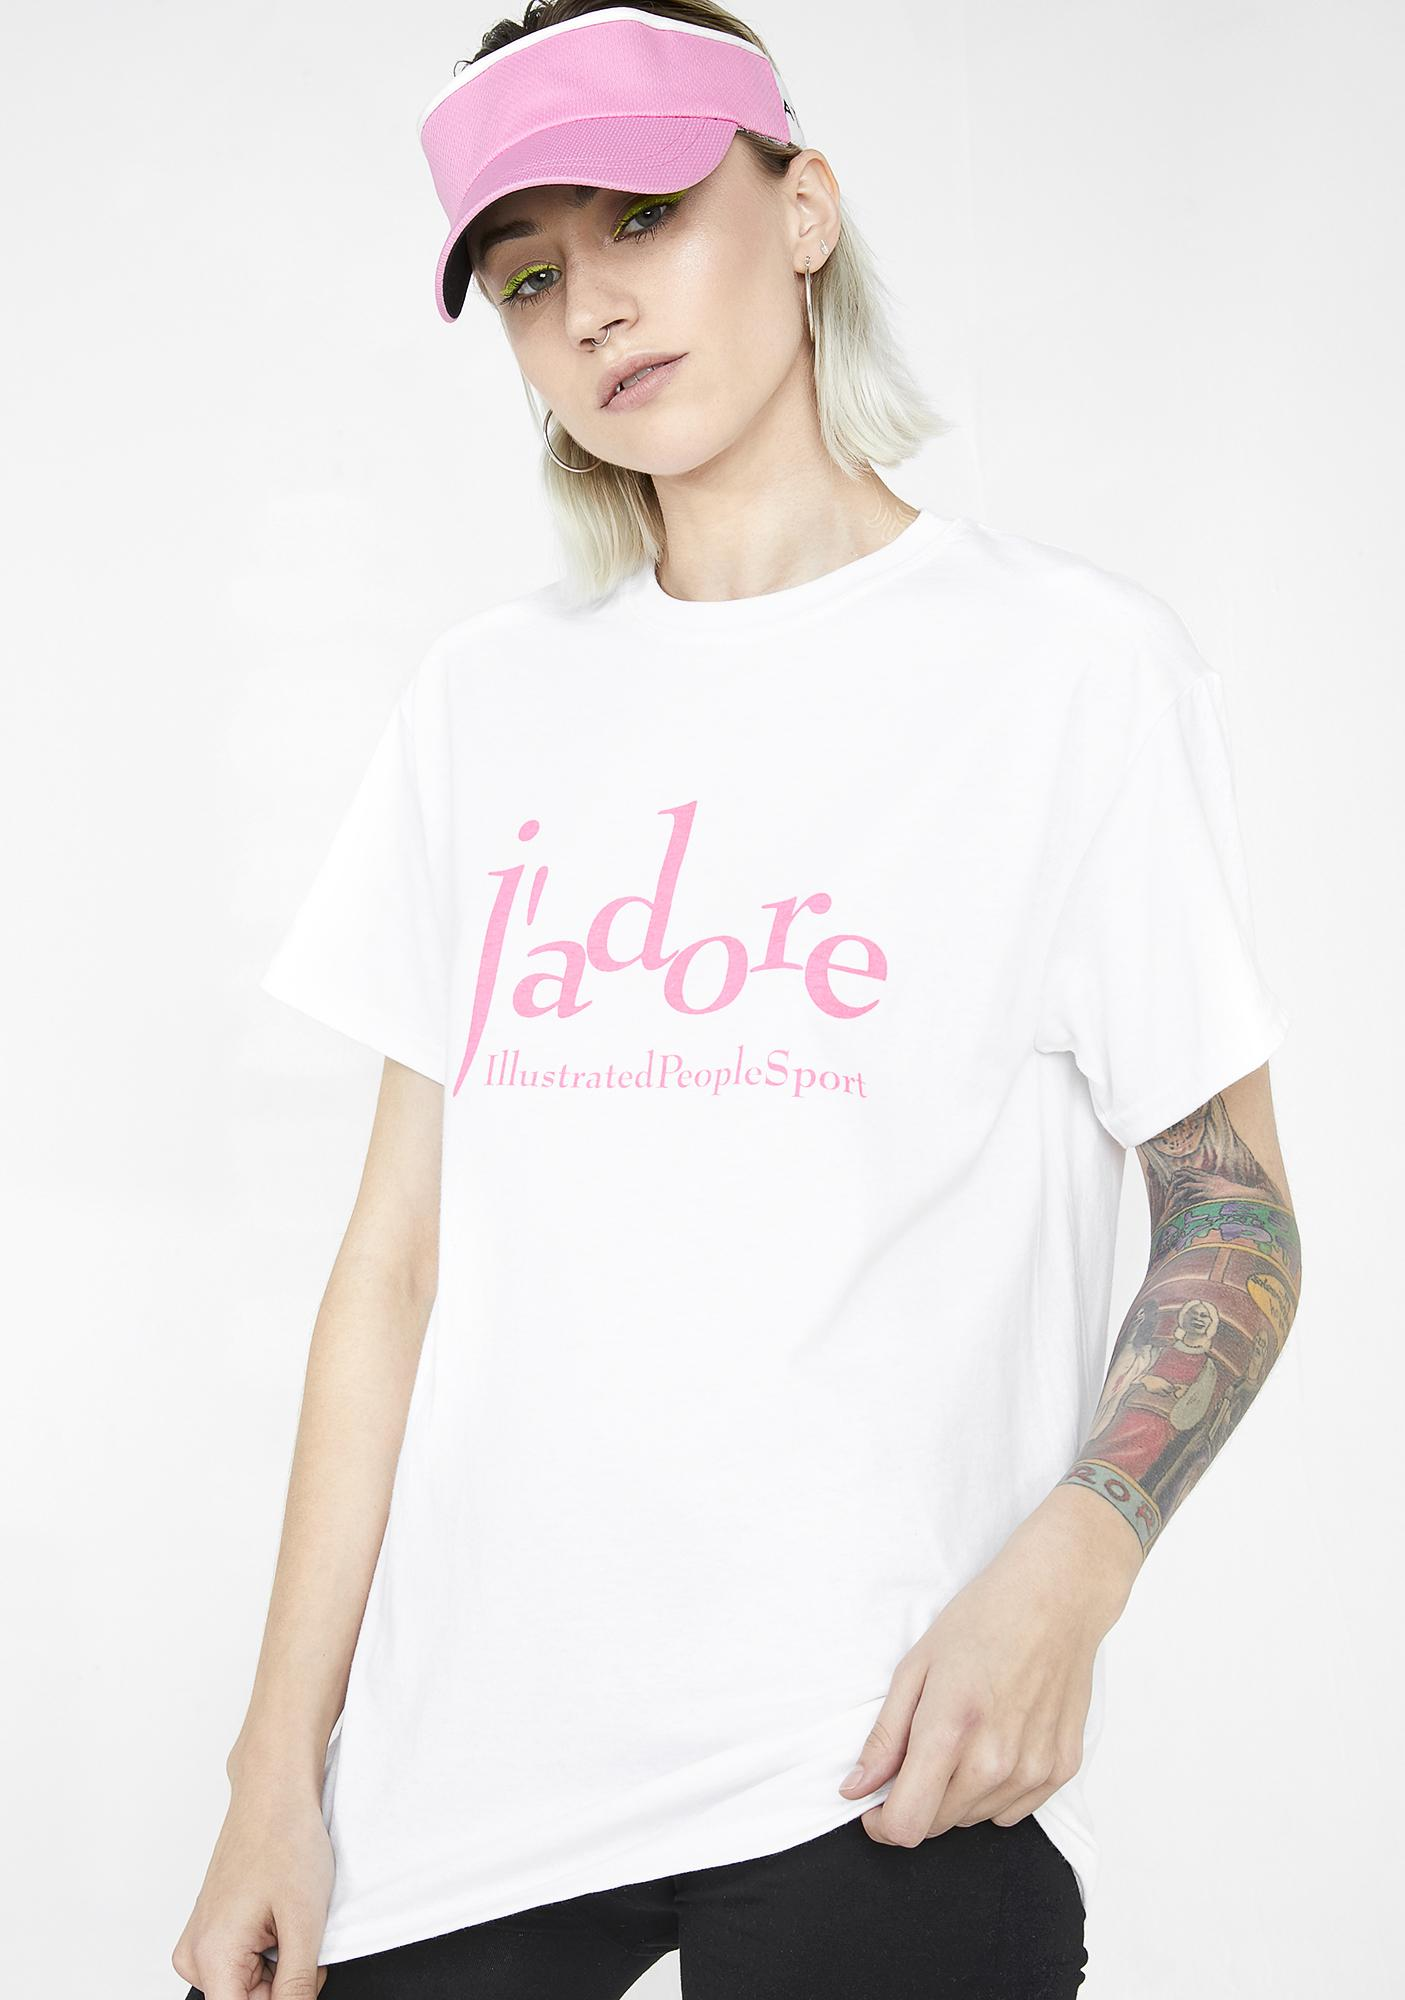 Illustrated People J'adore Sport Tee